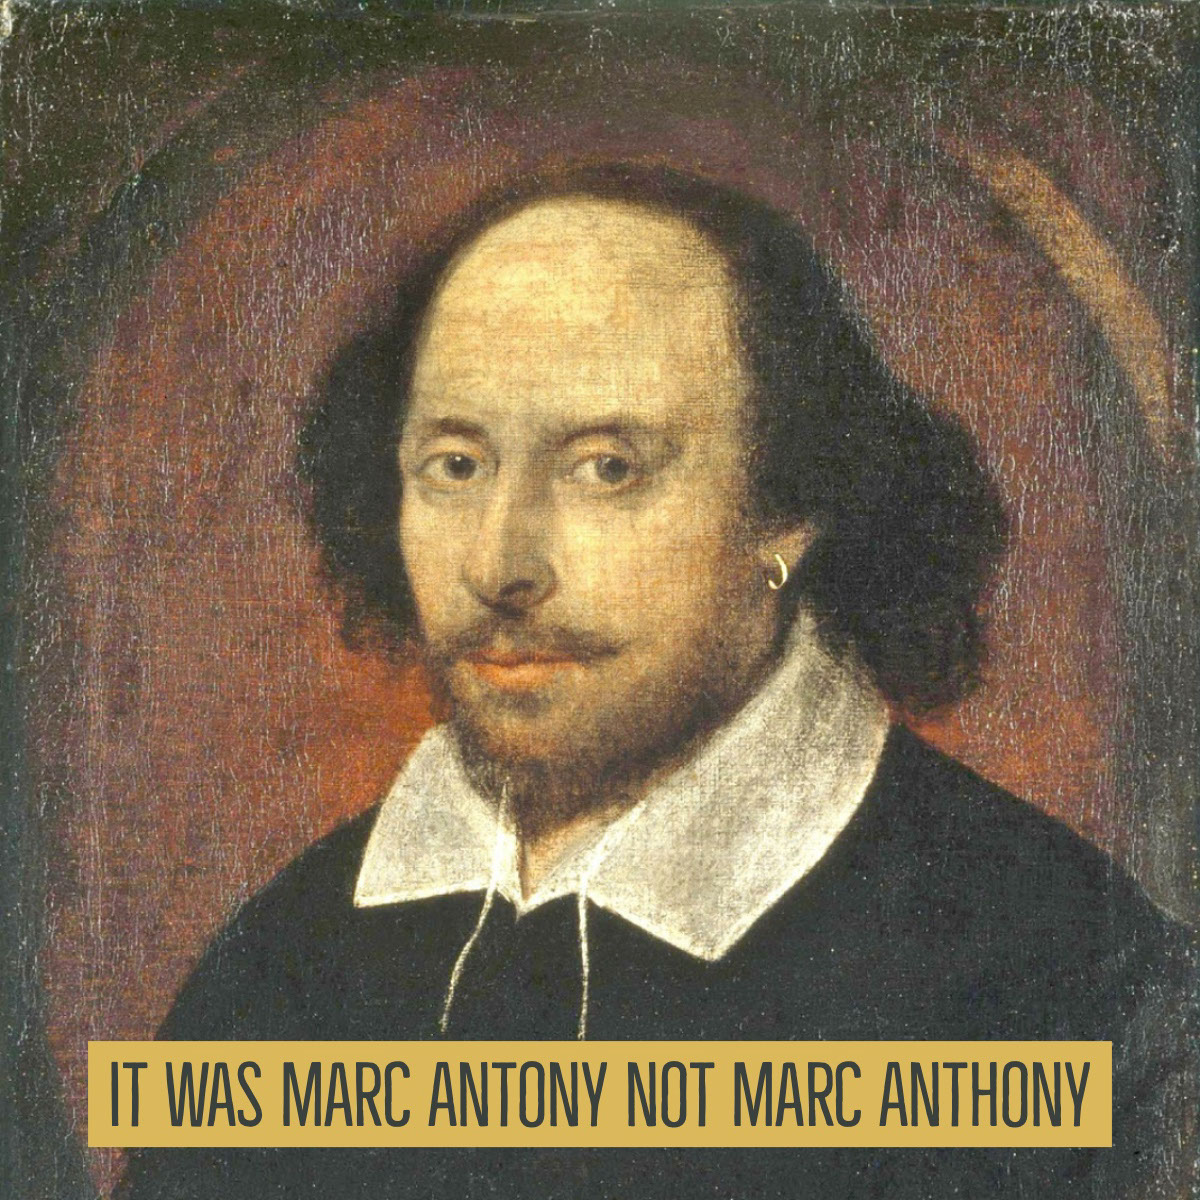 Shakespeare Meme It was Marc Antony not Marc Anthony